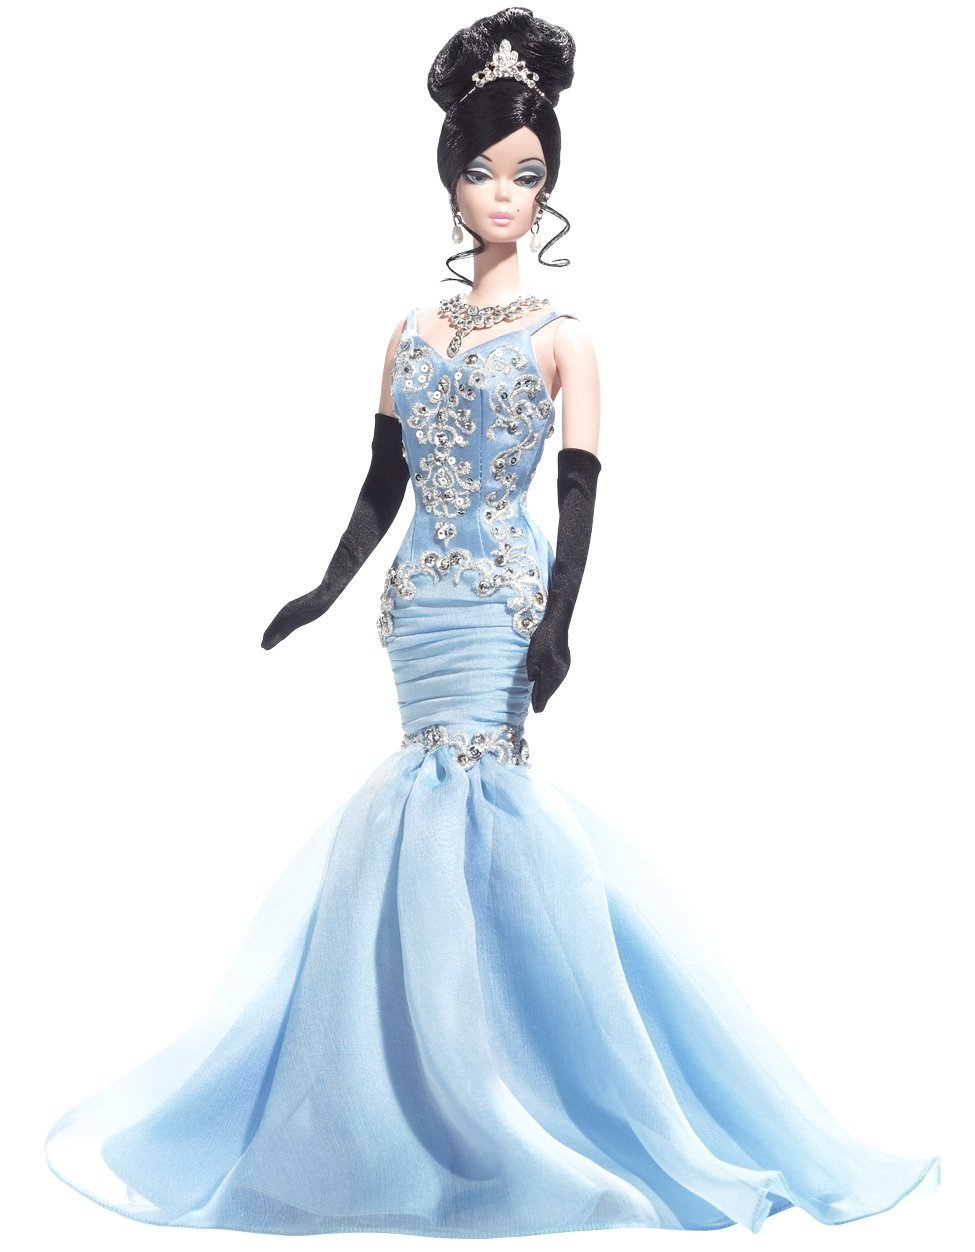 BARBIE BFMC Glamour Doll - The Soiree